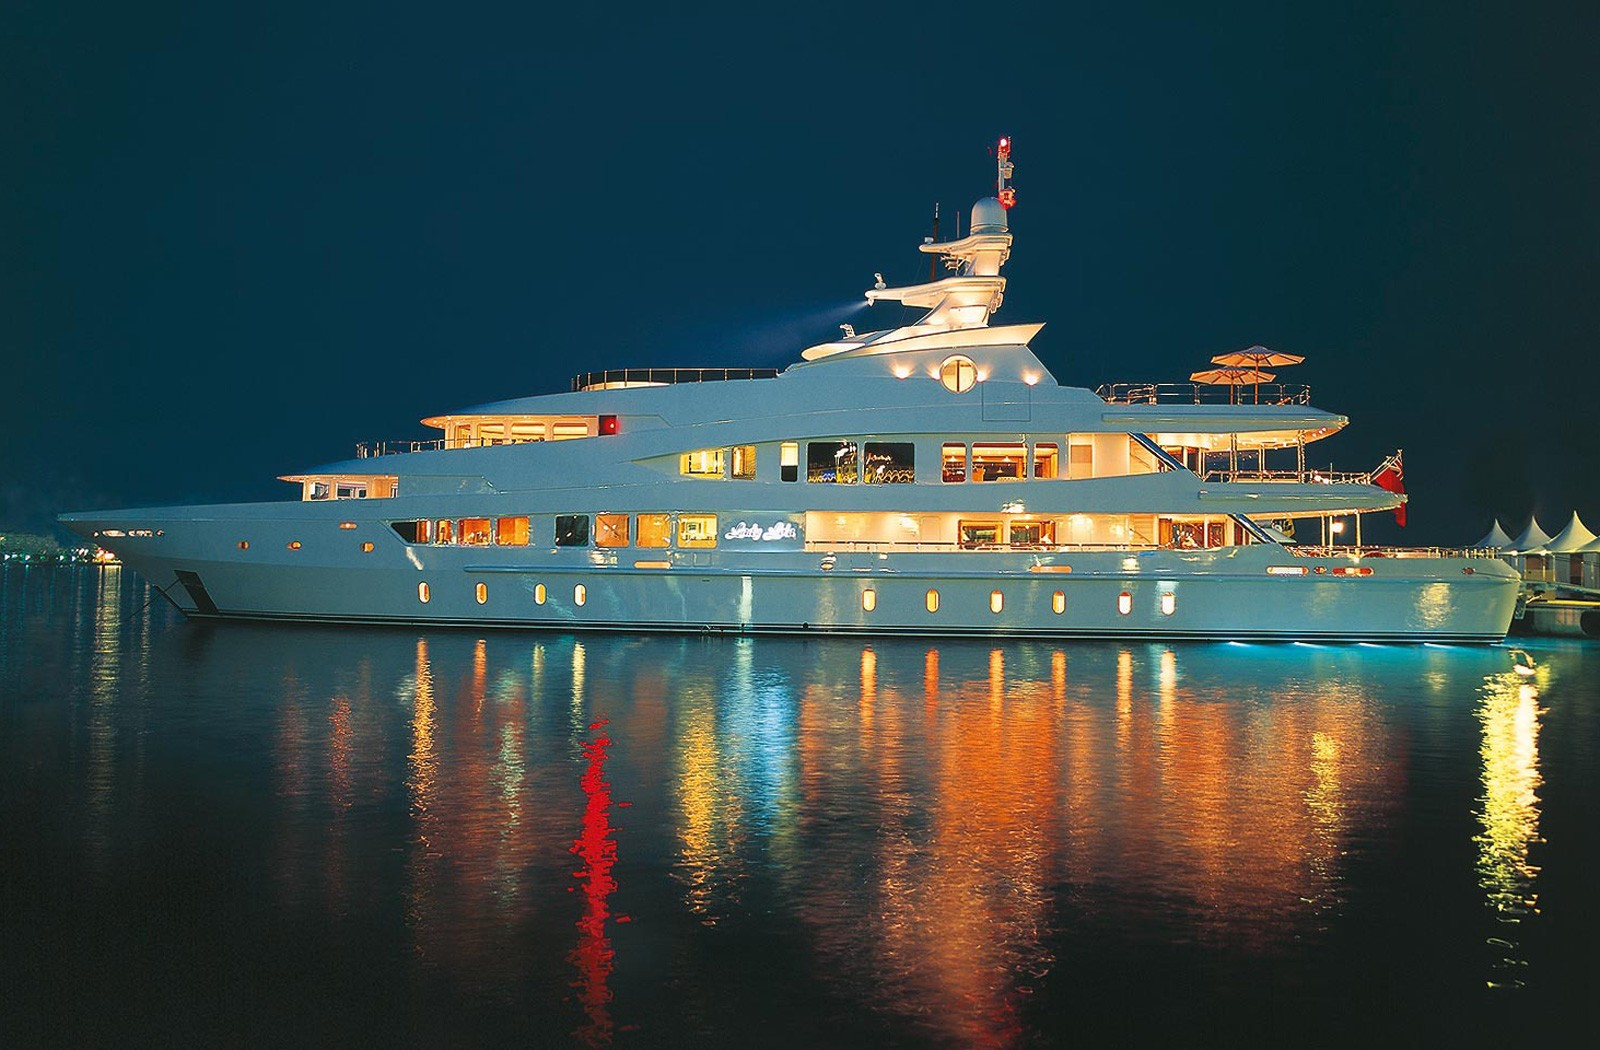 Evening: Yacht LUCKY LADY's Profile Overview Captured